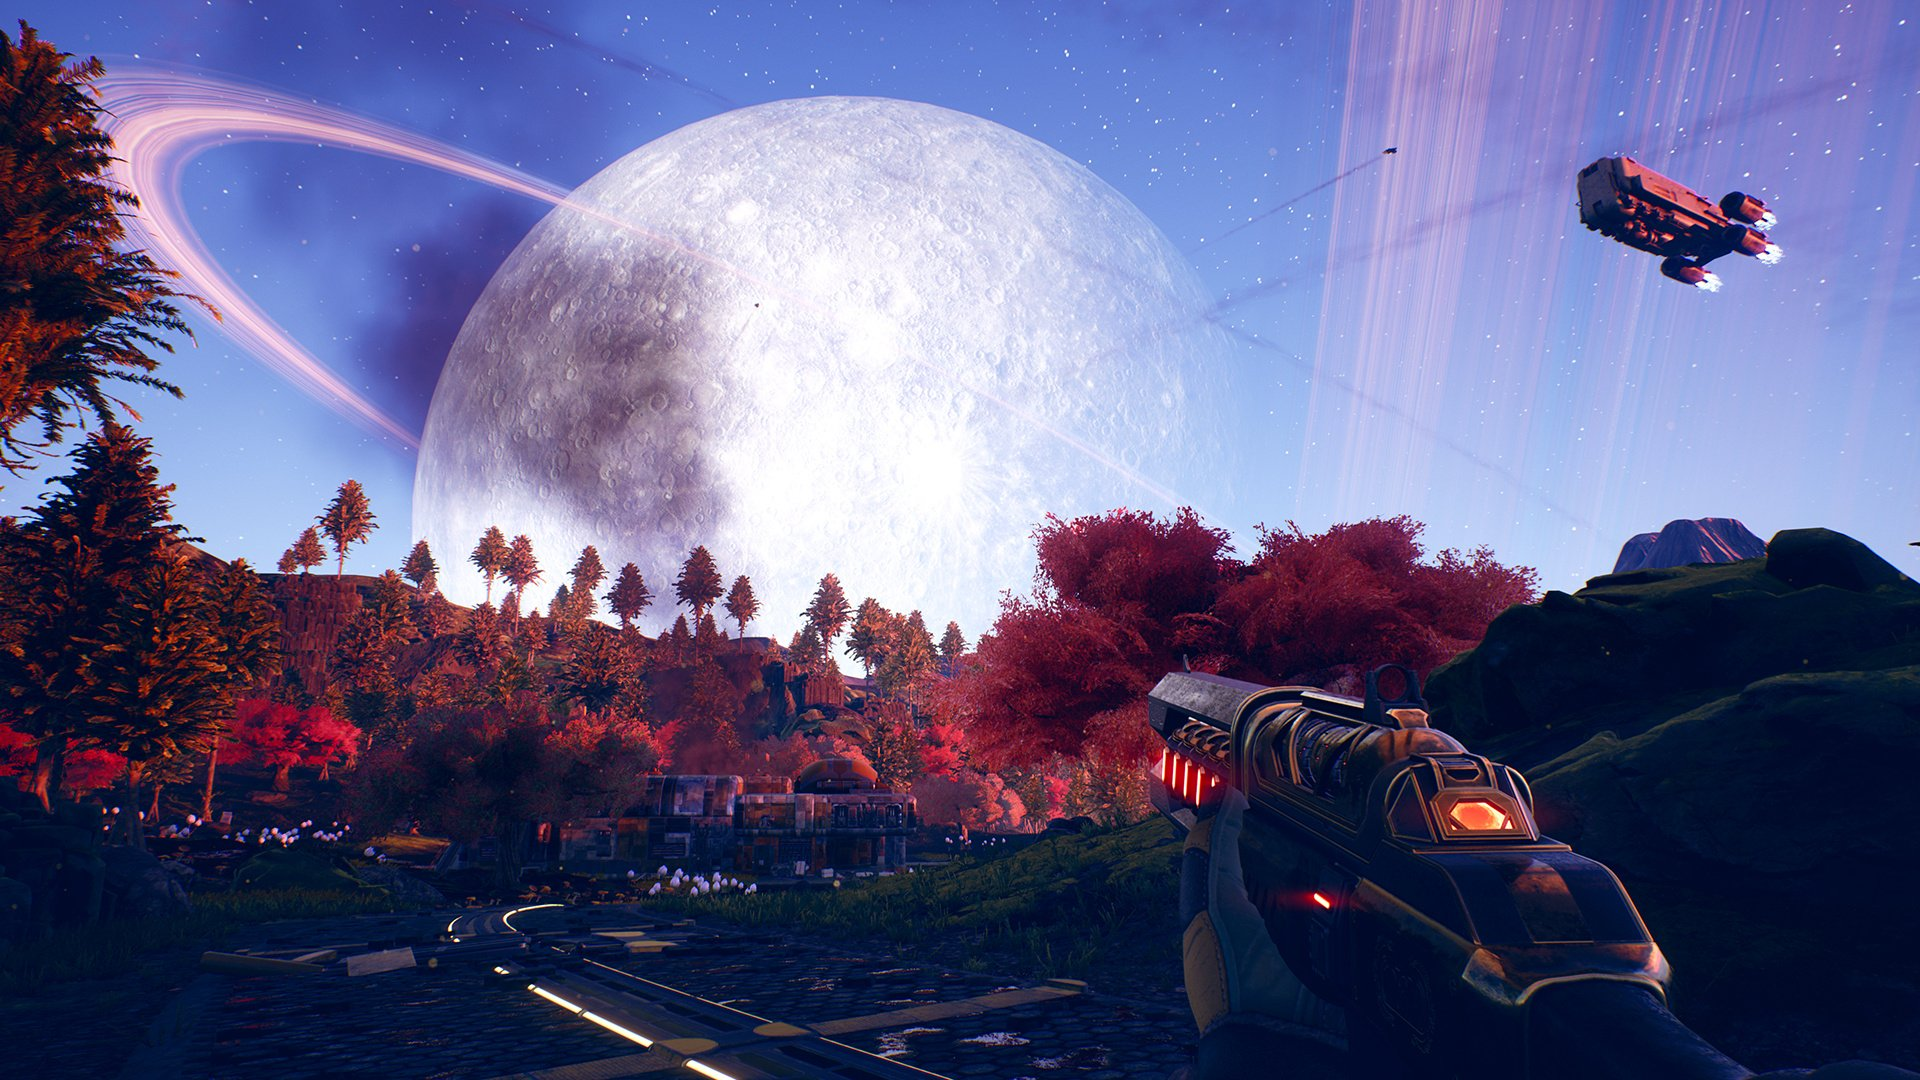 Sci-Fi RPG The Outer Worlds to Be Shown at E3 2019 - Push Square